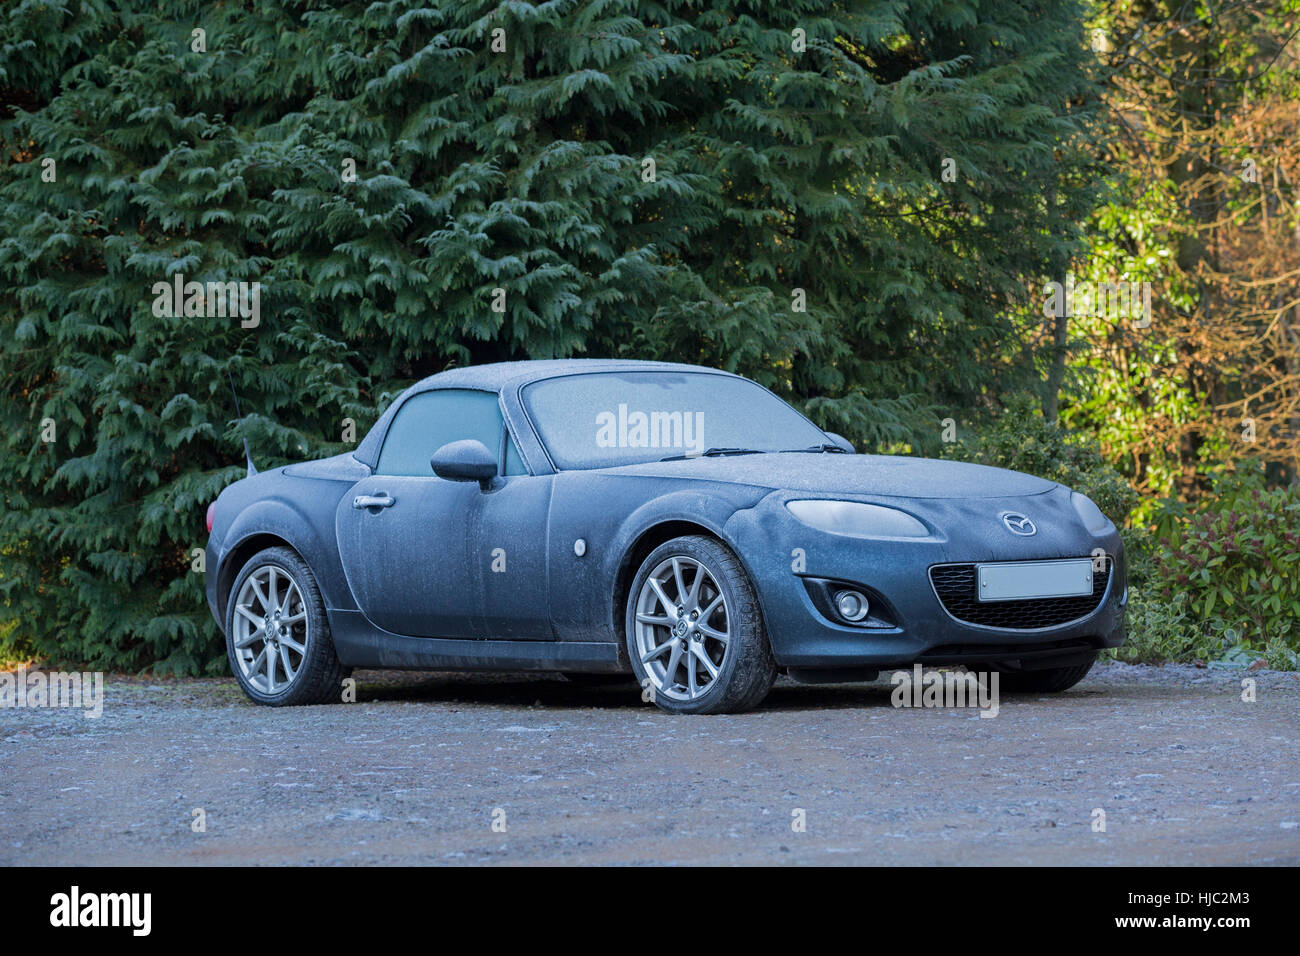 Mazda Sportscar Stock Photos & Mazda Sportscar Stock Images - Alamy